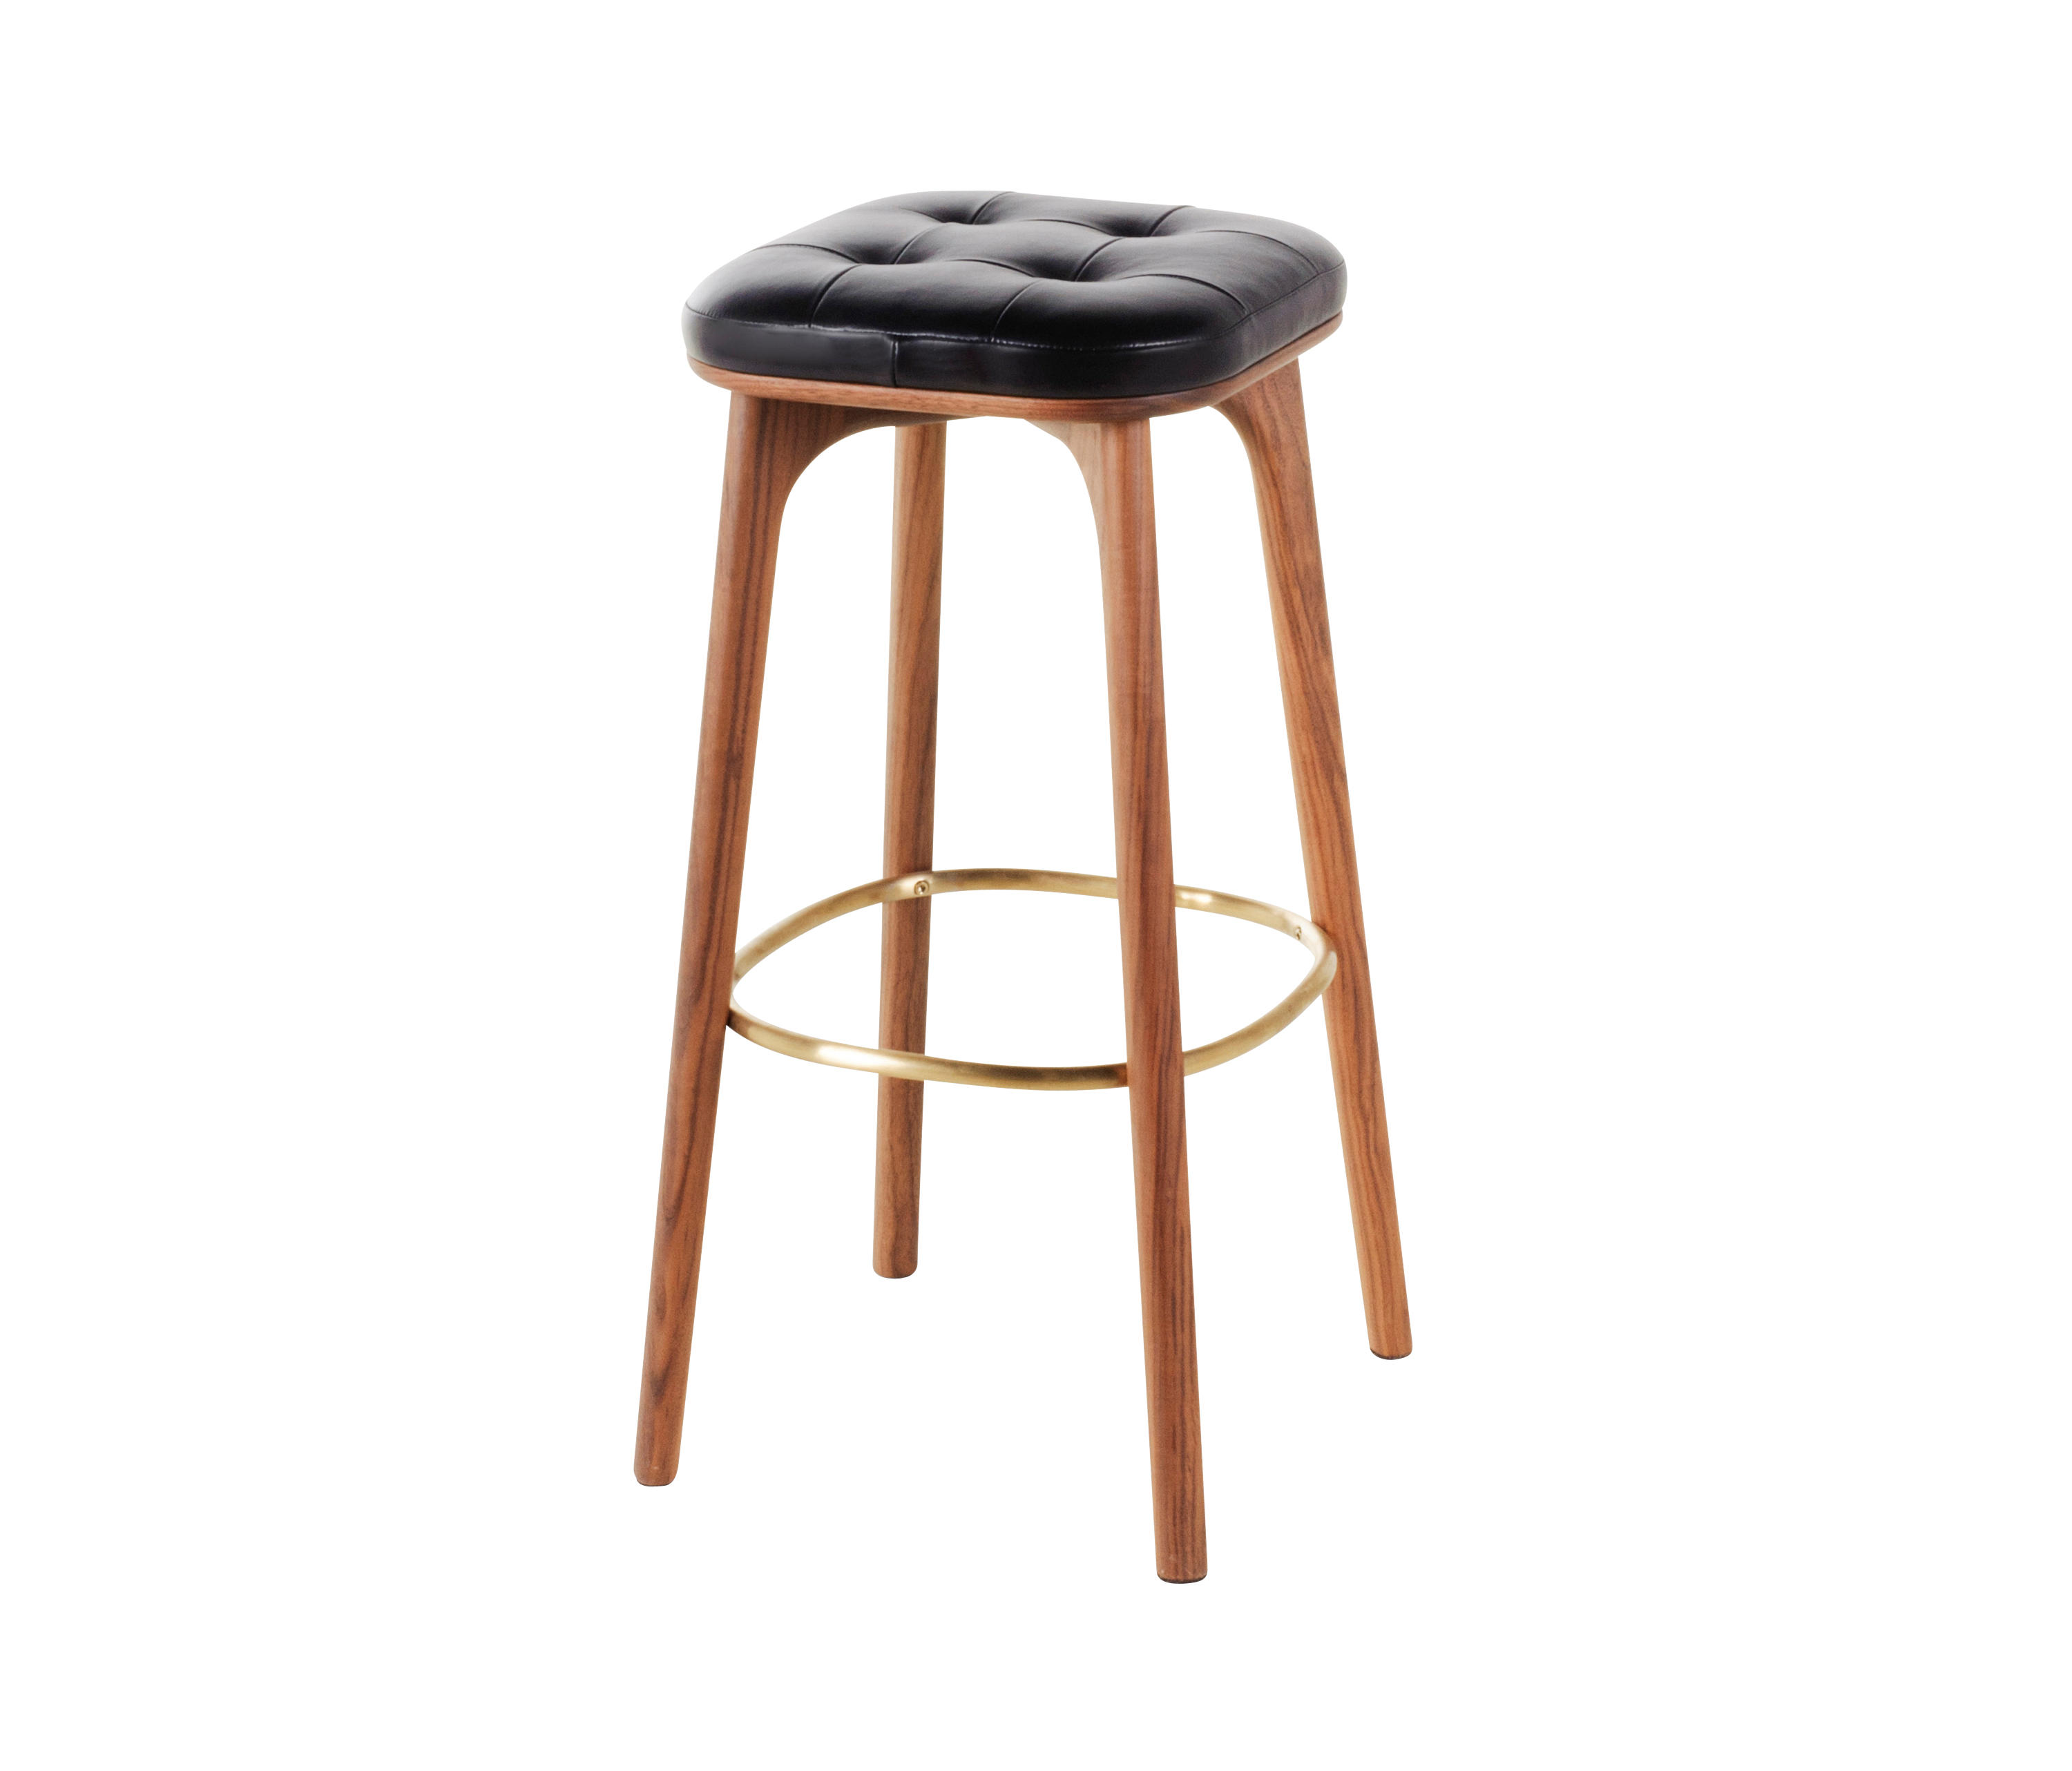 Utility Stool H760 Bar Stools From Stellar Works Architonic